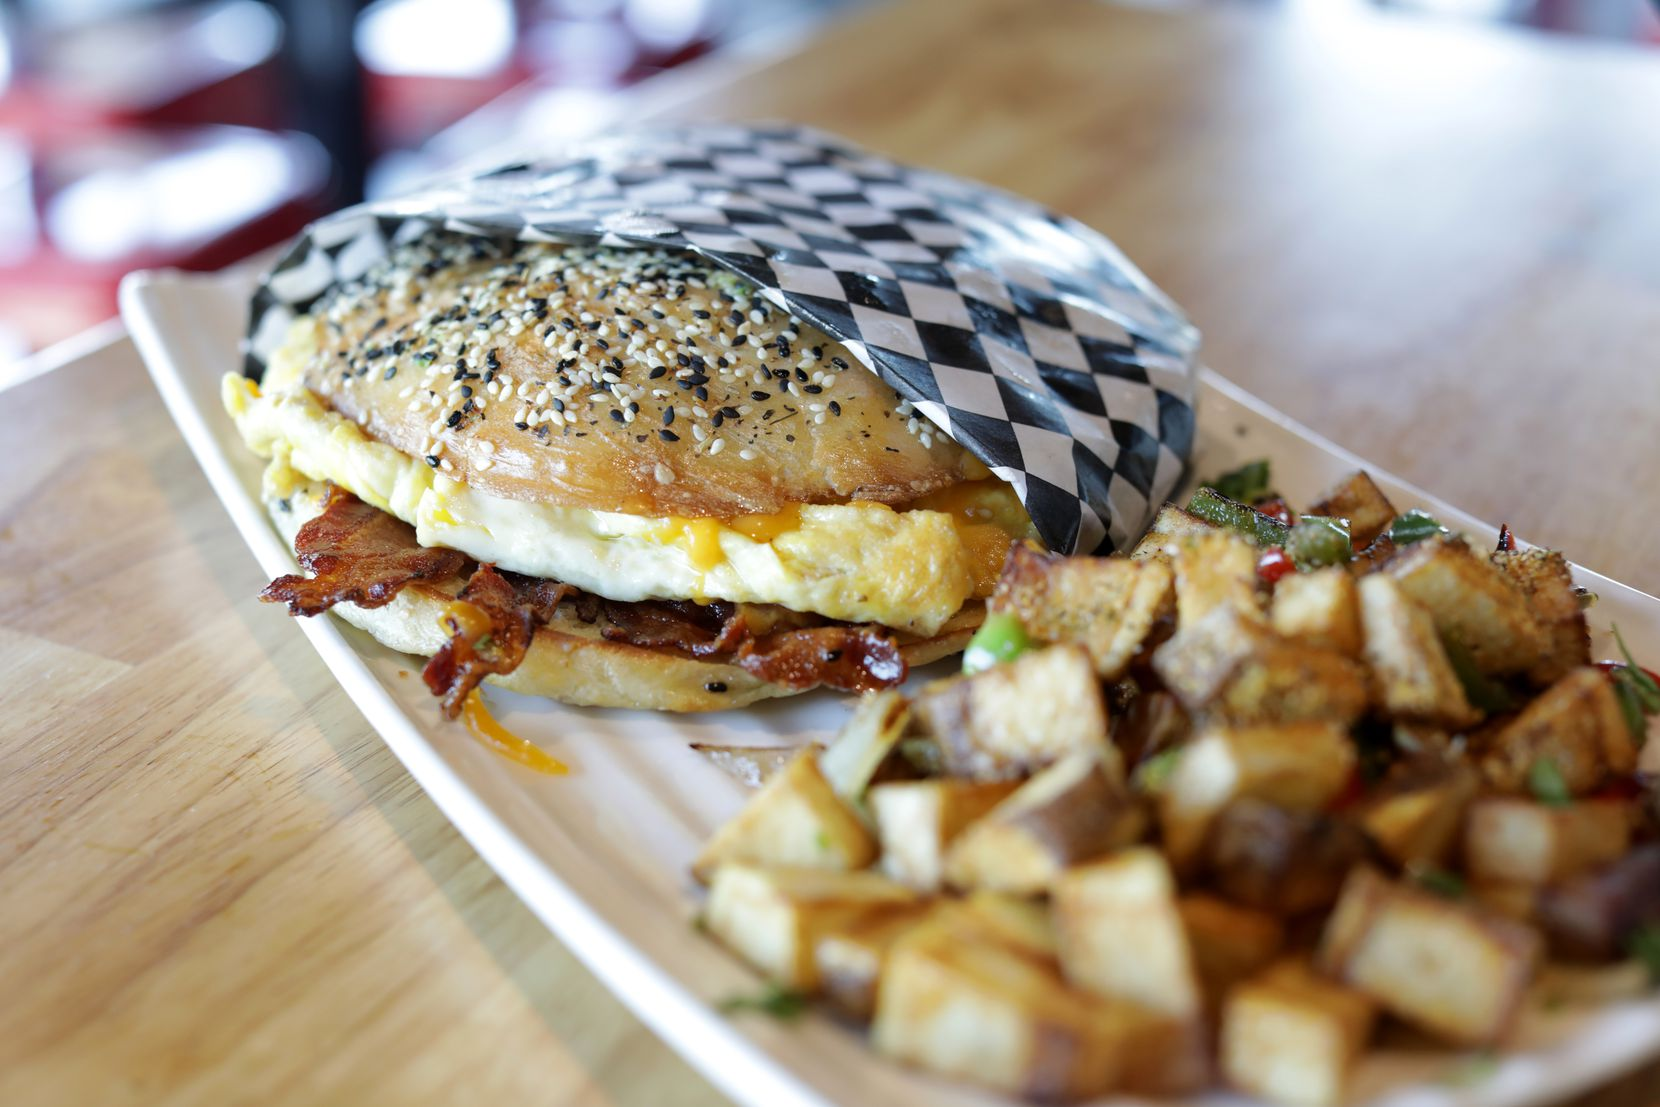 The Everything Bagel Sandwich at Cedar Creek Brewhouse and Eatery in Farmers Branch